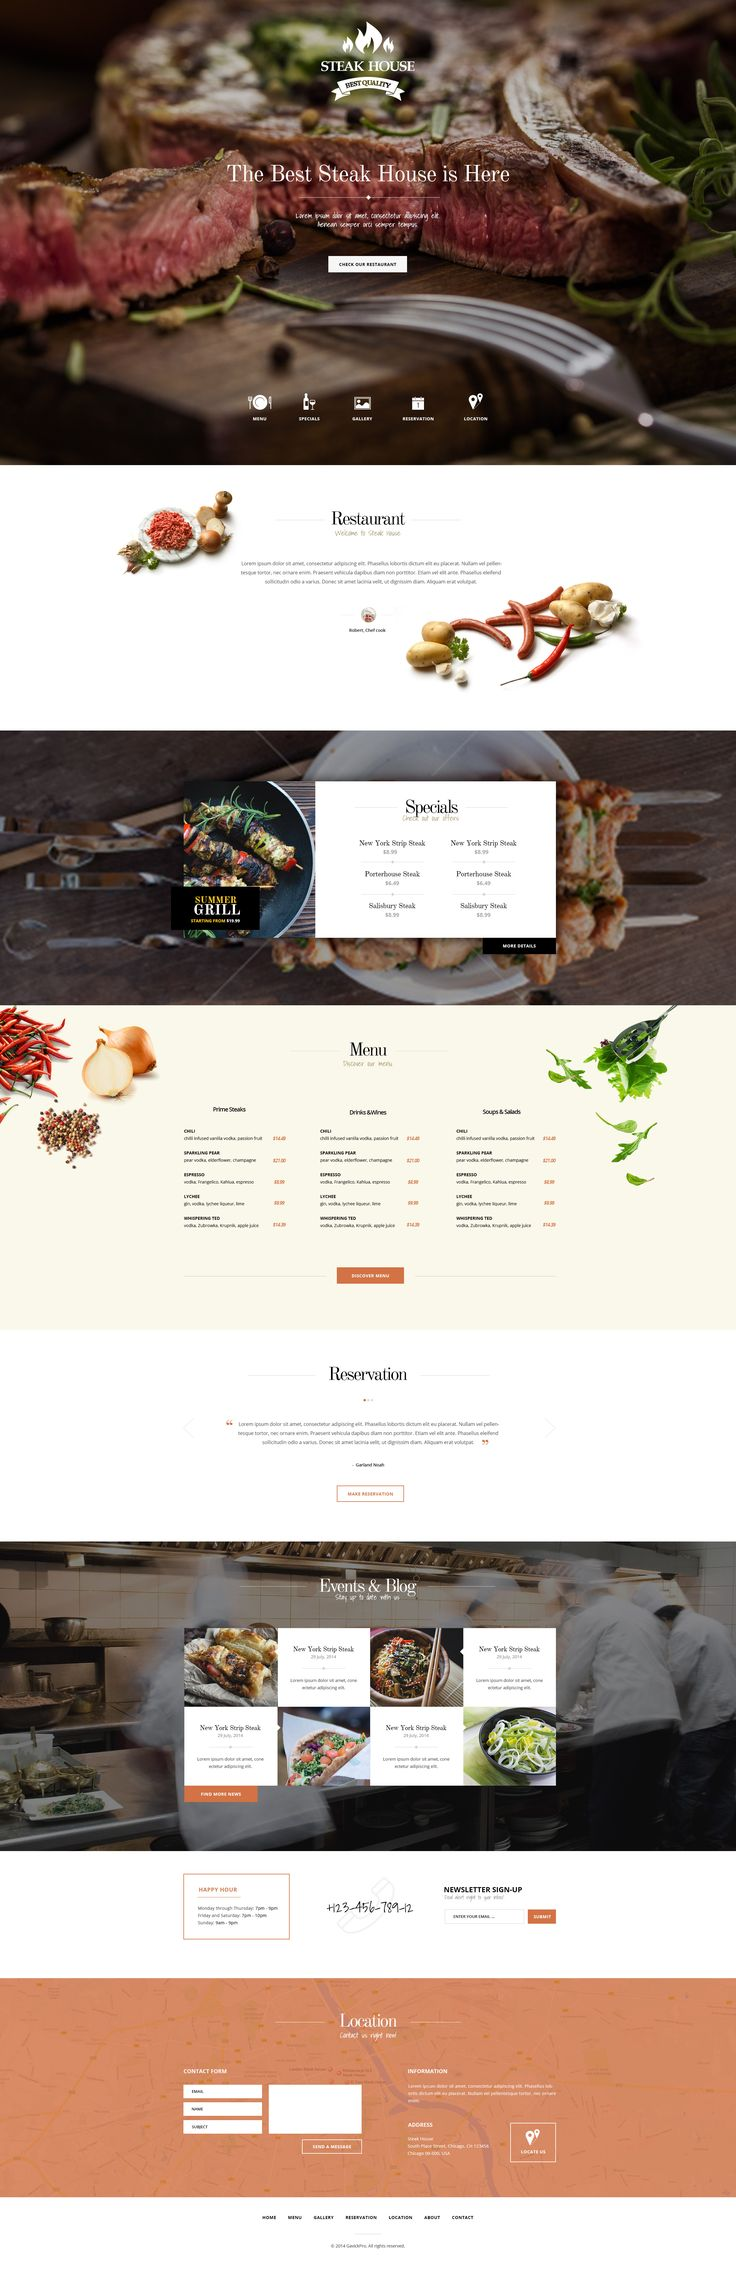 https://dribbble.com/shots/1669643-Steak-House-Food-WordPress-Theme/attachments/263283